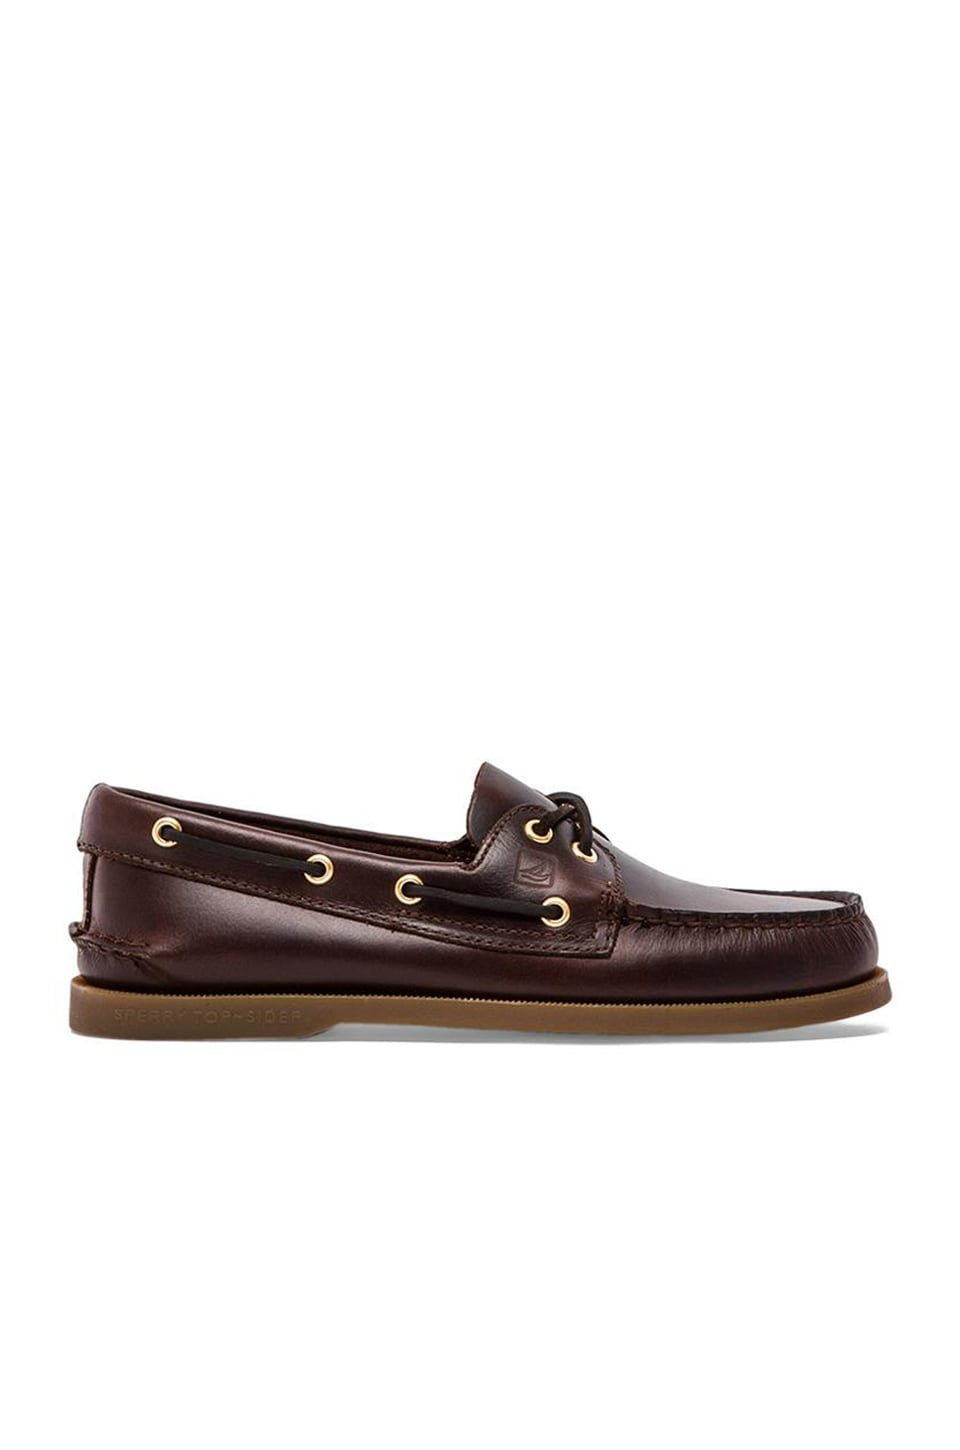 Sperry Top-Sider A/O in Amaretto